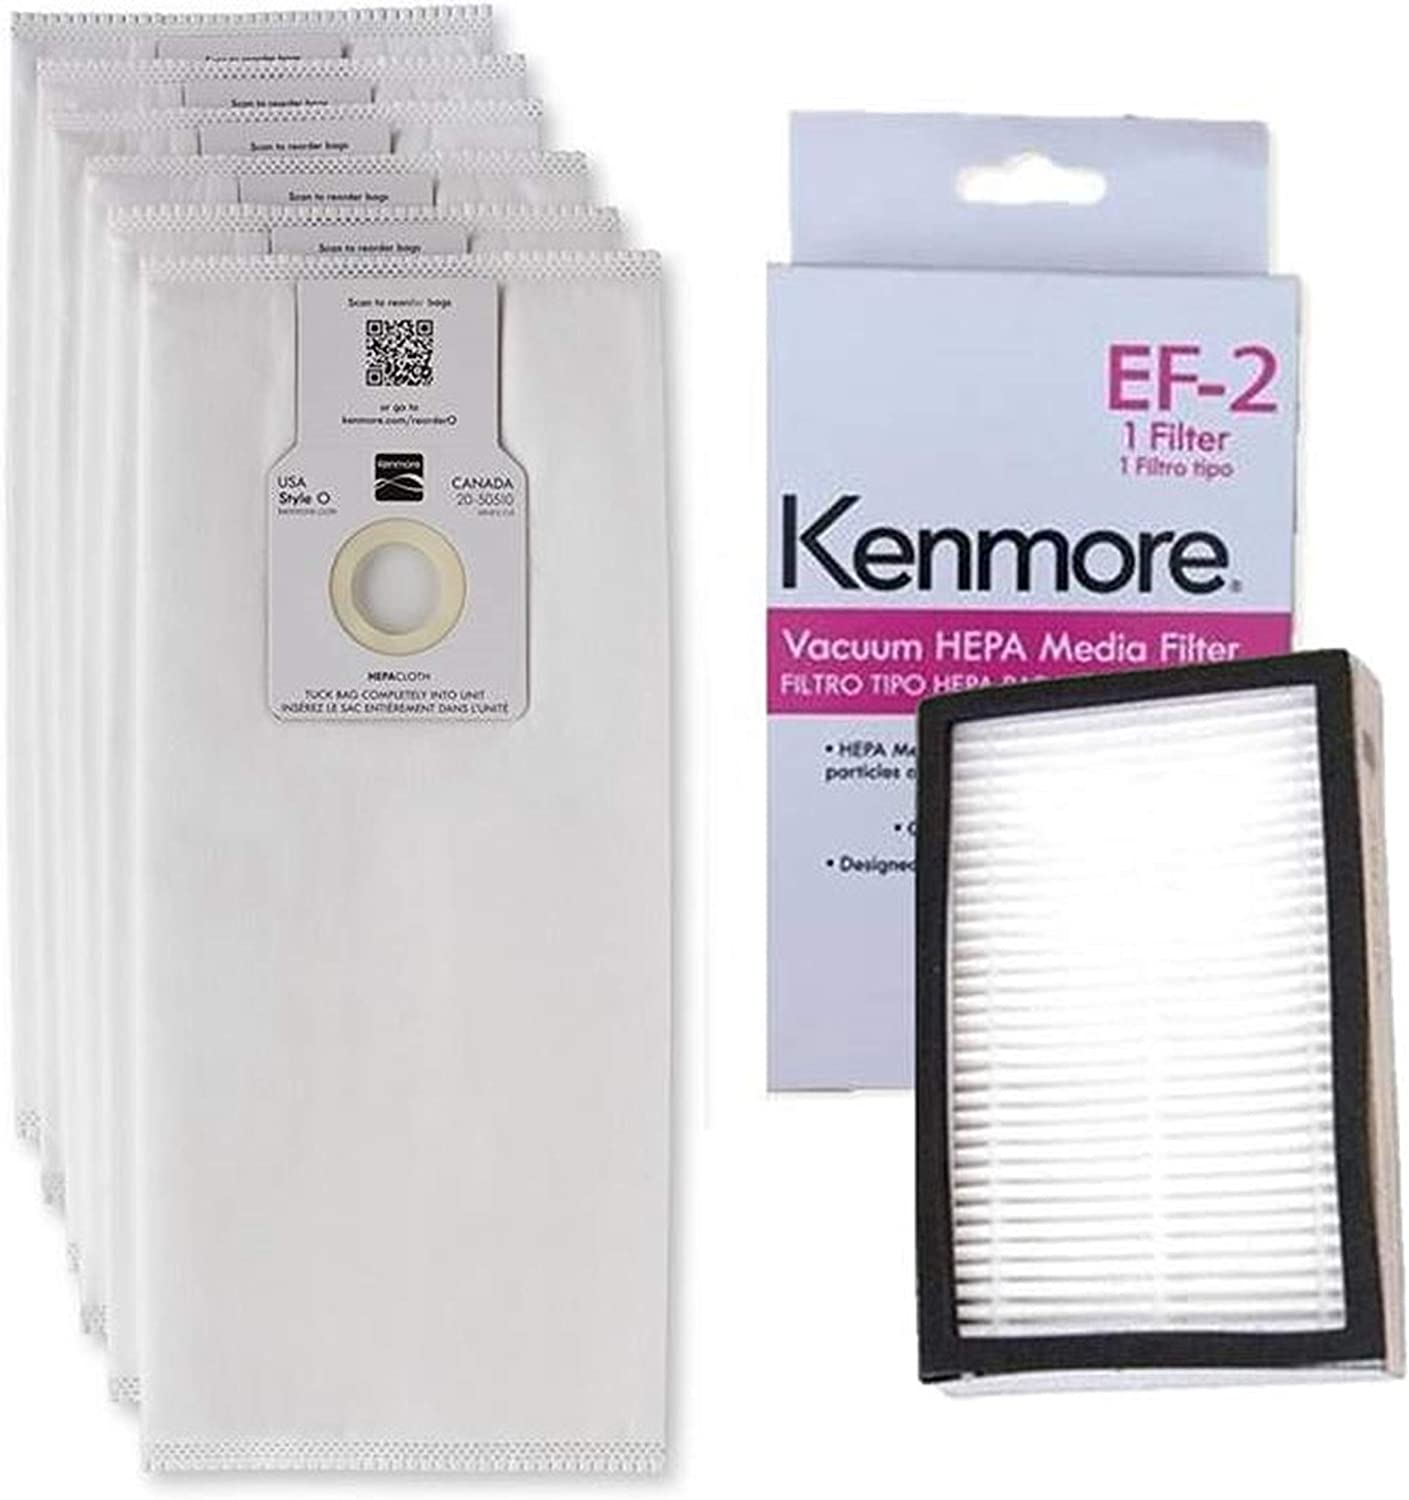 Ultra Care 6+1 PK OEM Replacement for Kenmore O/U HEPA Bags 53294 + 1 Sears Kenmore EF-2 Filter 86880